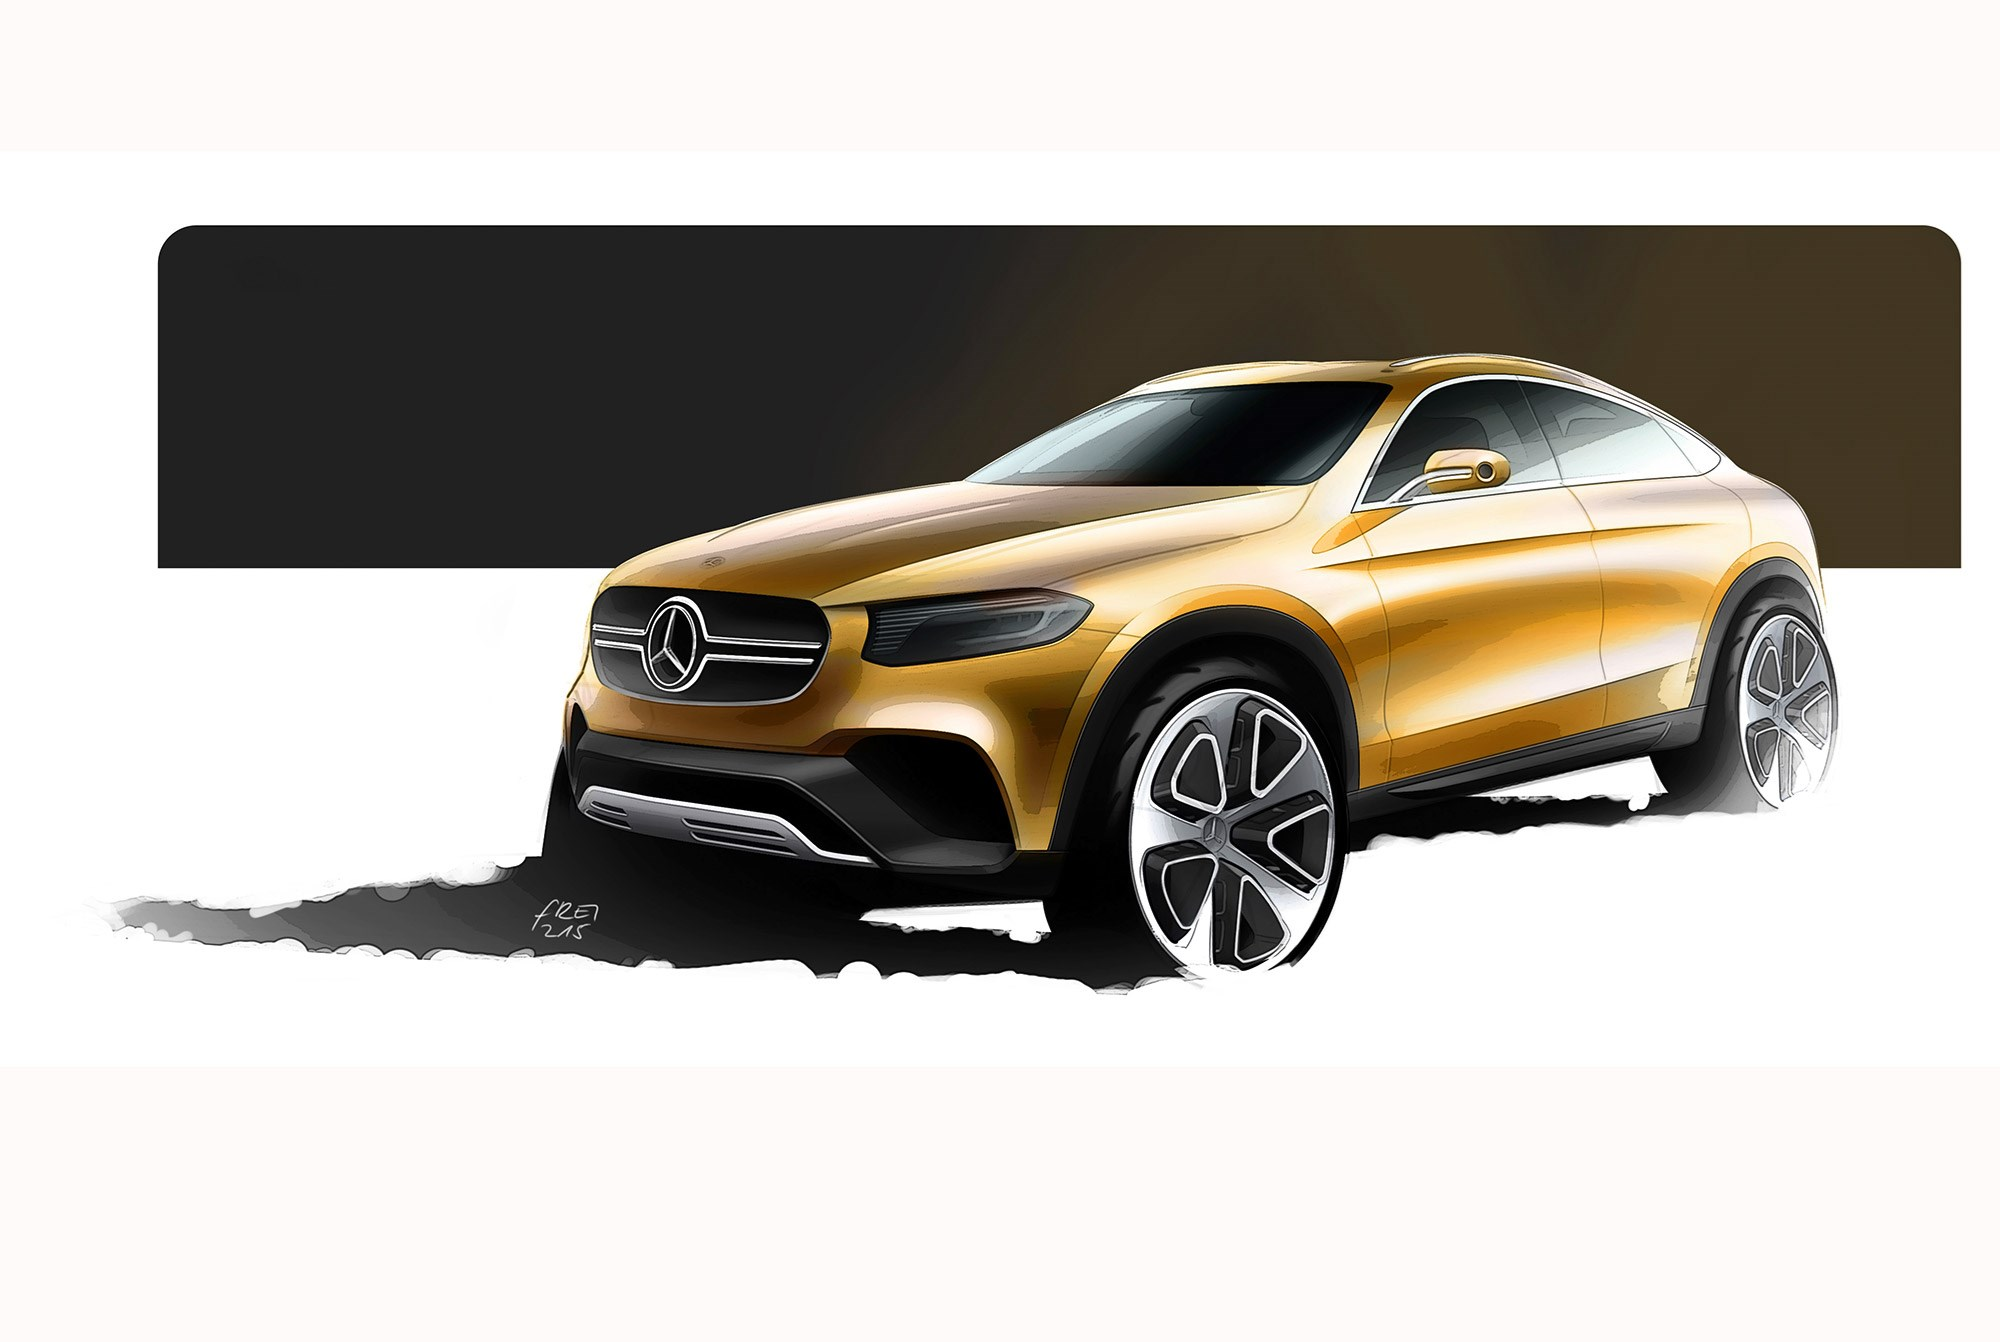 Mercedes Concept Glc Coupe Its Our First Look At The New Glk Car Jeep Patriot Engine Diagram Design Sketch Of